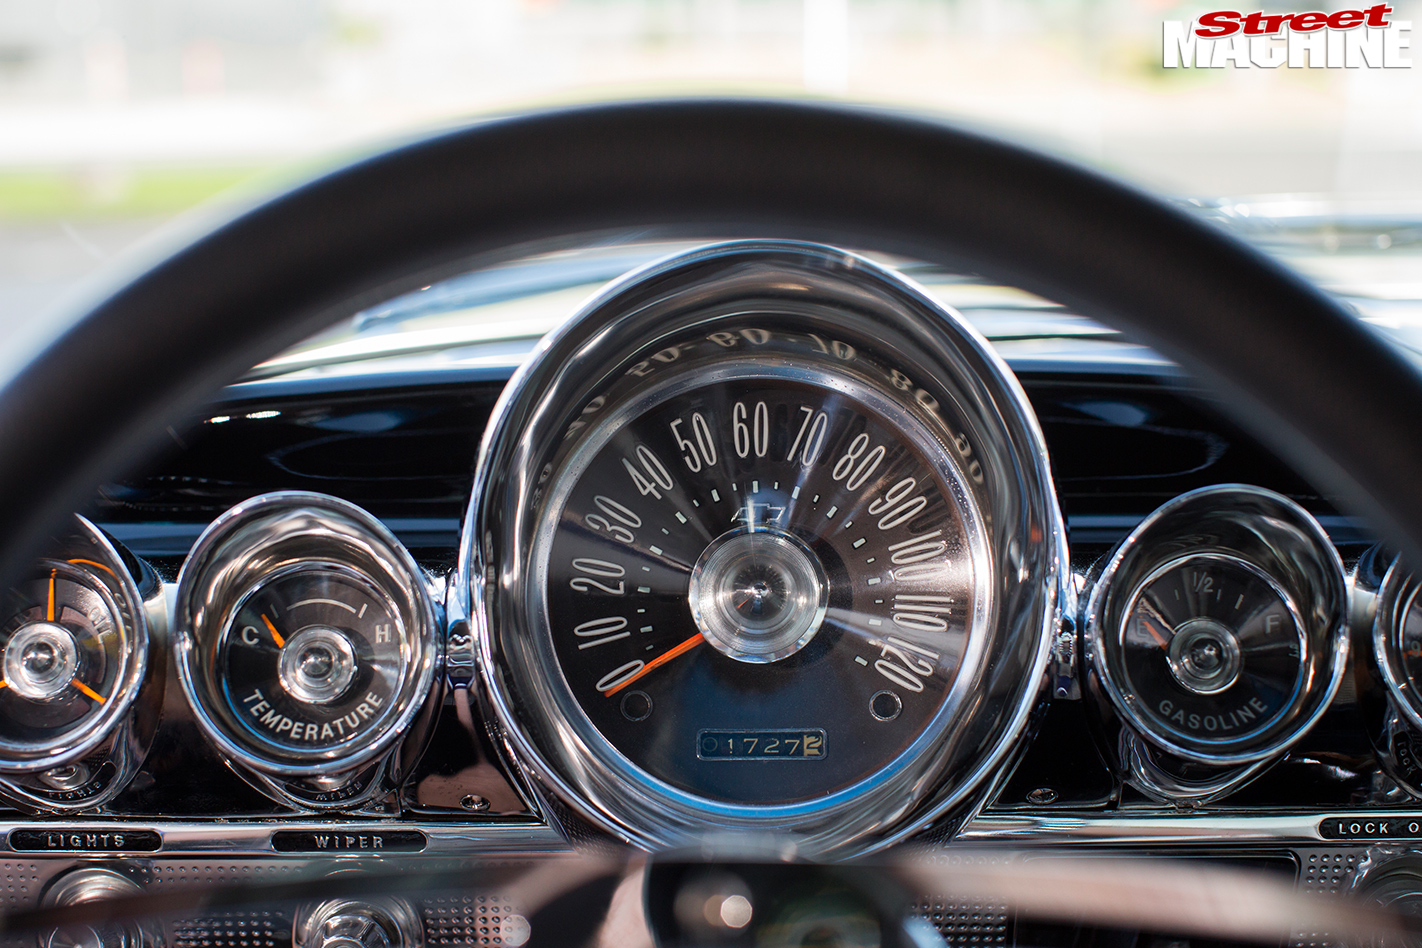 Chevrolet -impala -gauges